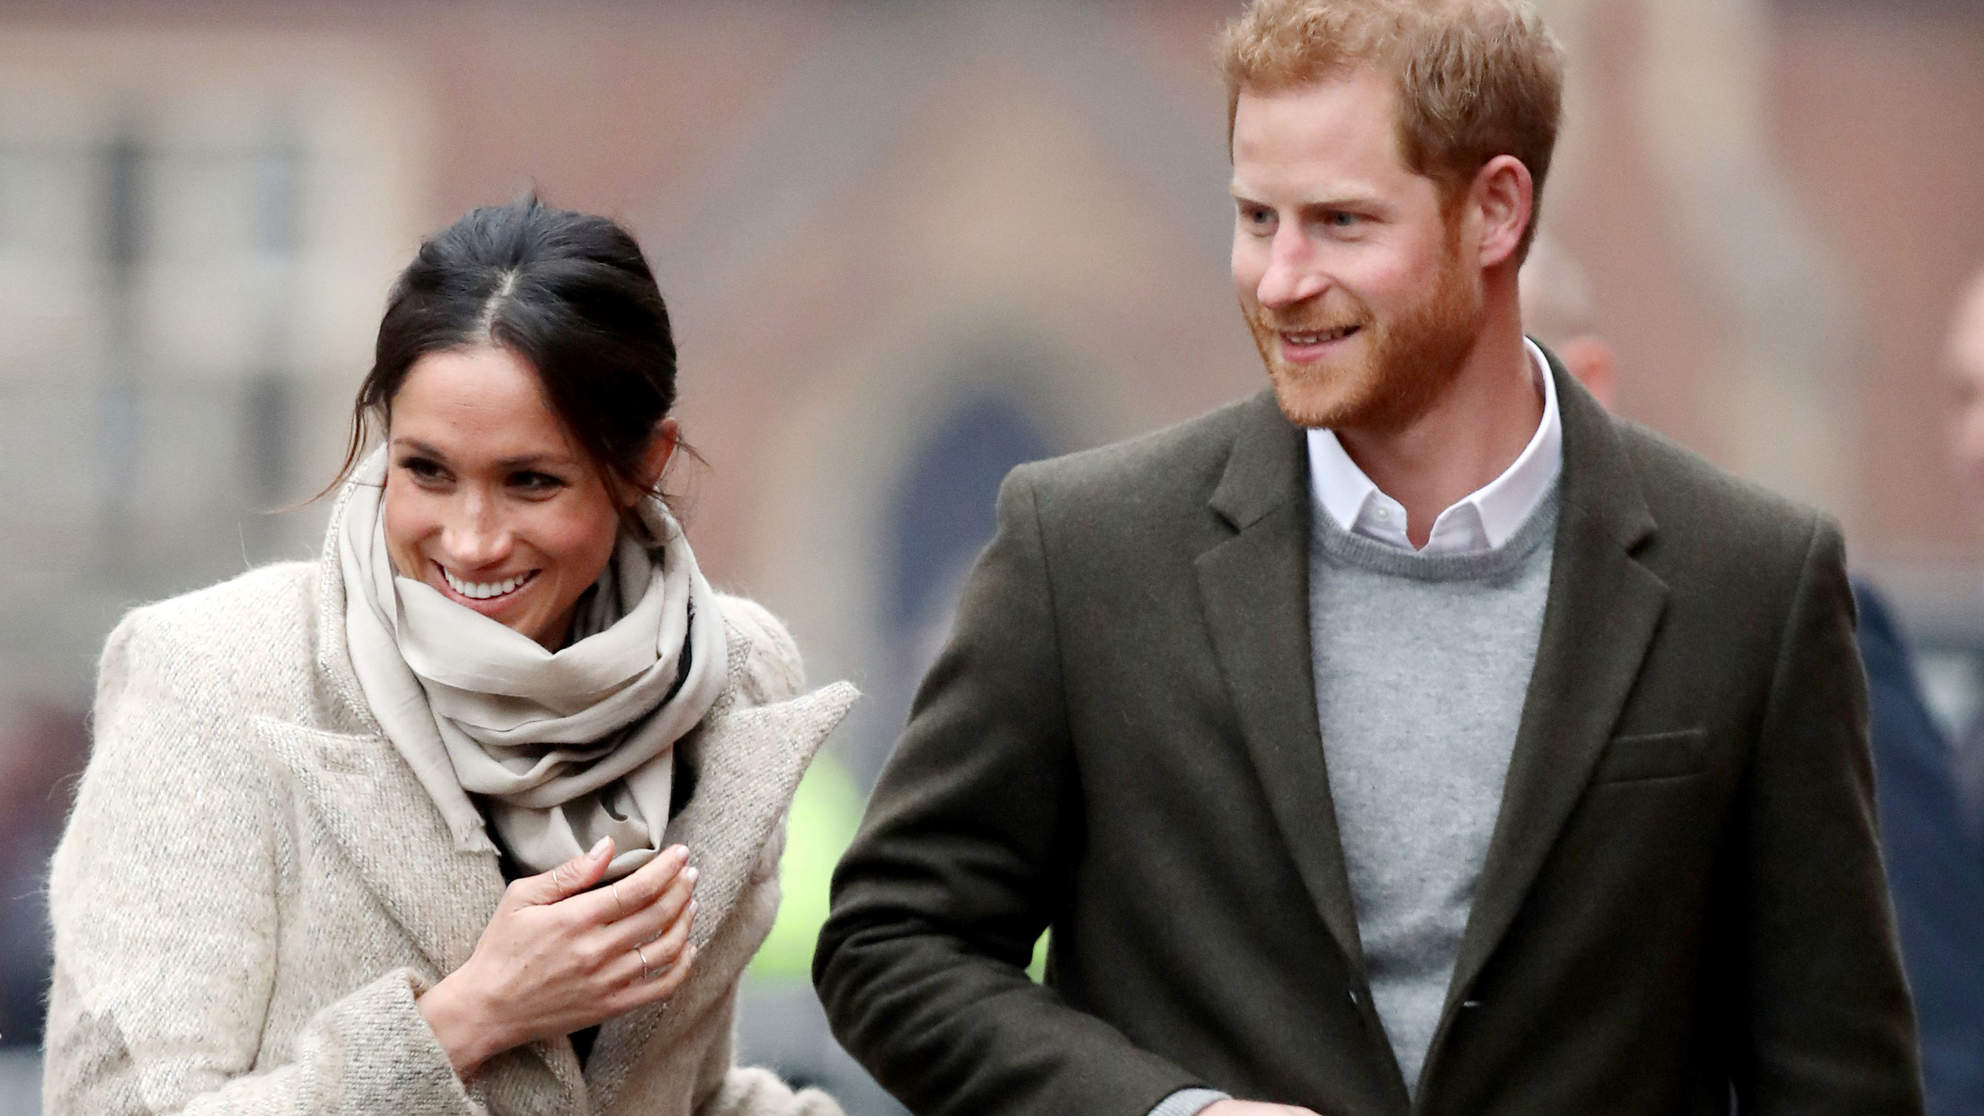 Prince Harry and Meghan Markle Make Their First 2018 Appearance in the Coziest Neutrals